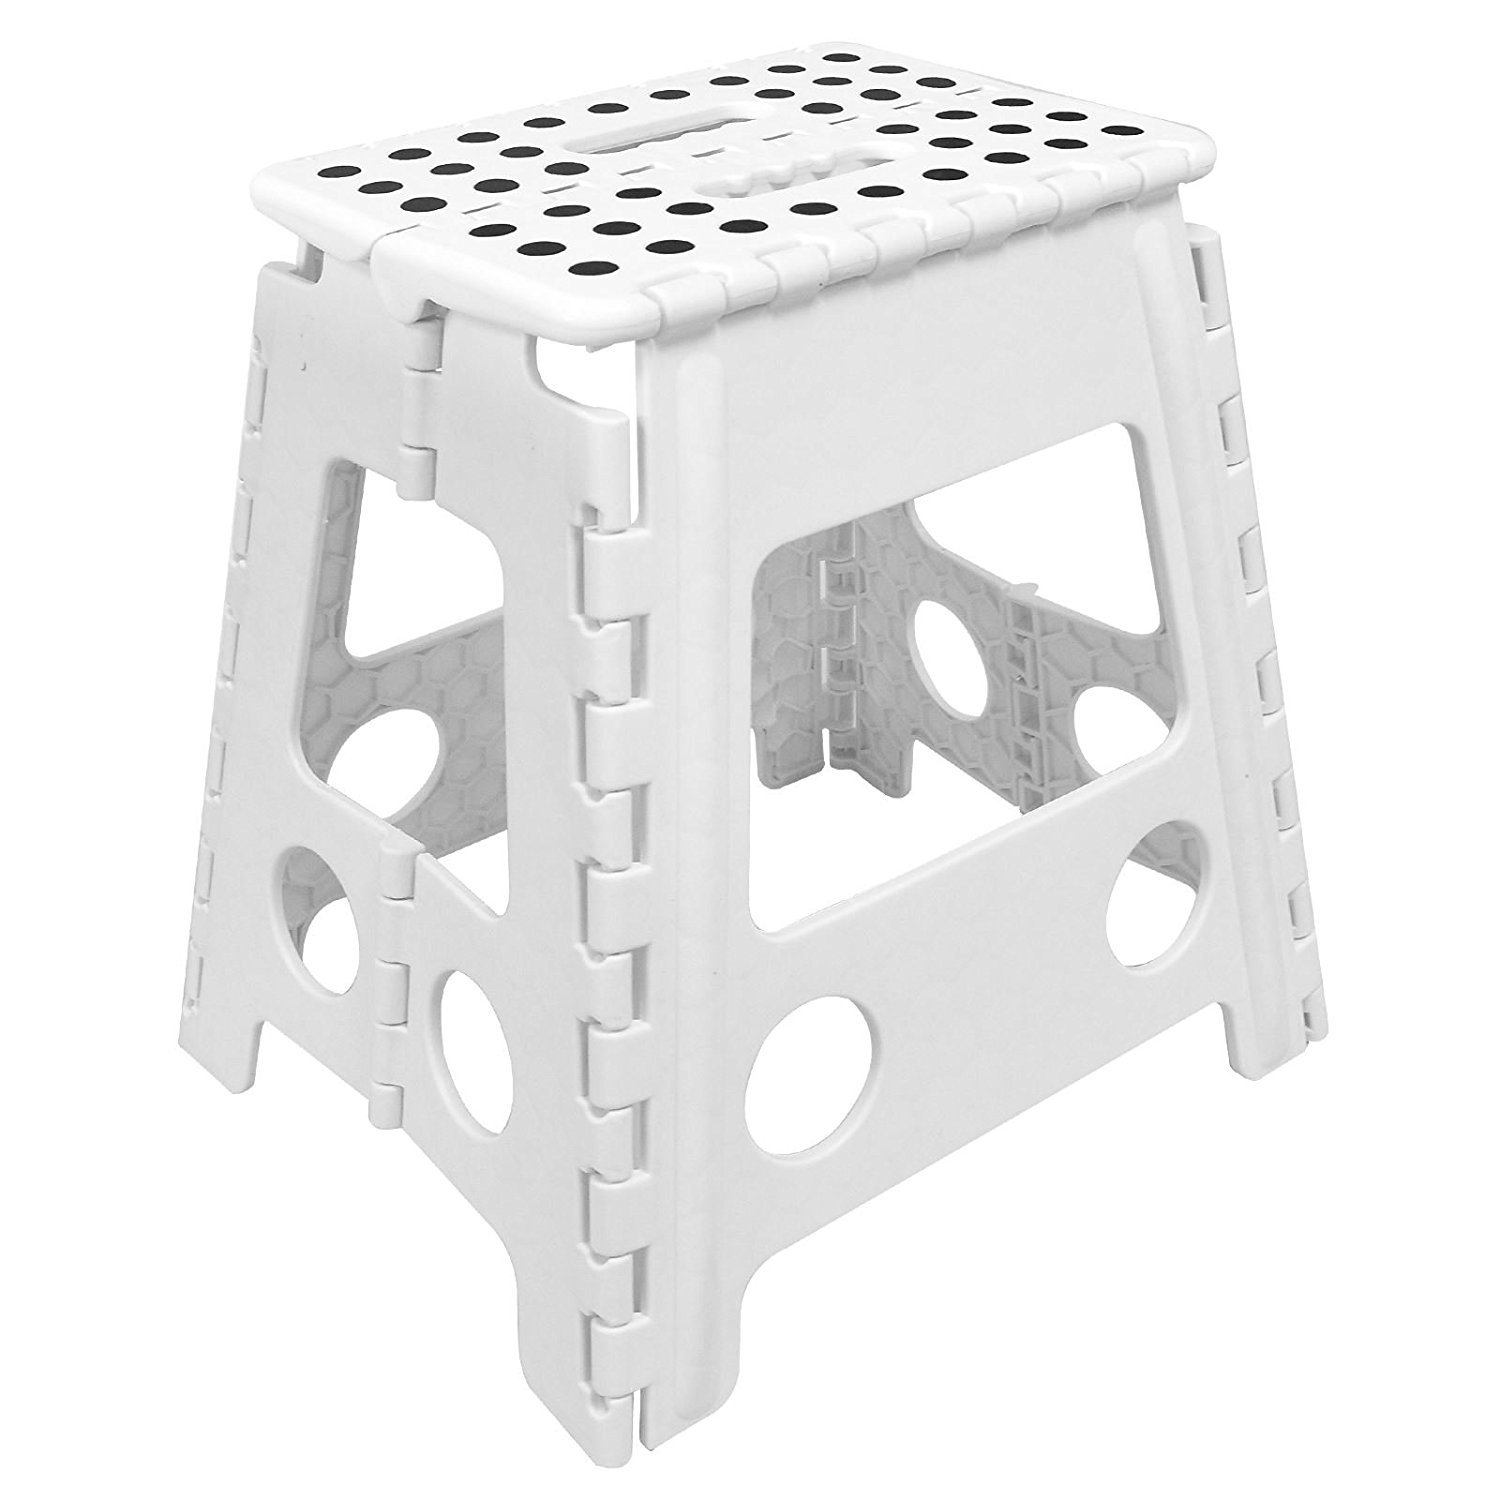 Awe Inspiring Asab Large Folding Foot Step Stool Multi Purpose Plastic Foldable Easy Storage Home Kitchen White Pabps2019 Chair Design Images Pabps2019Com